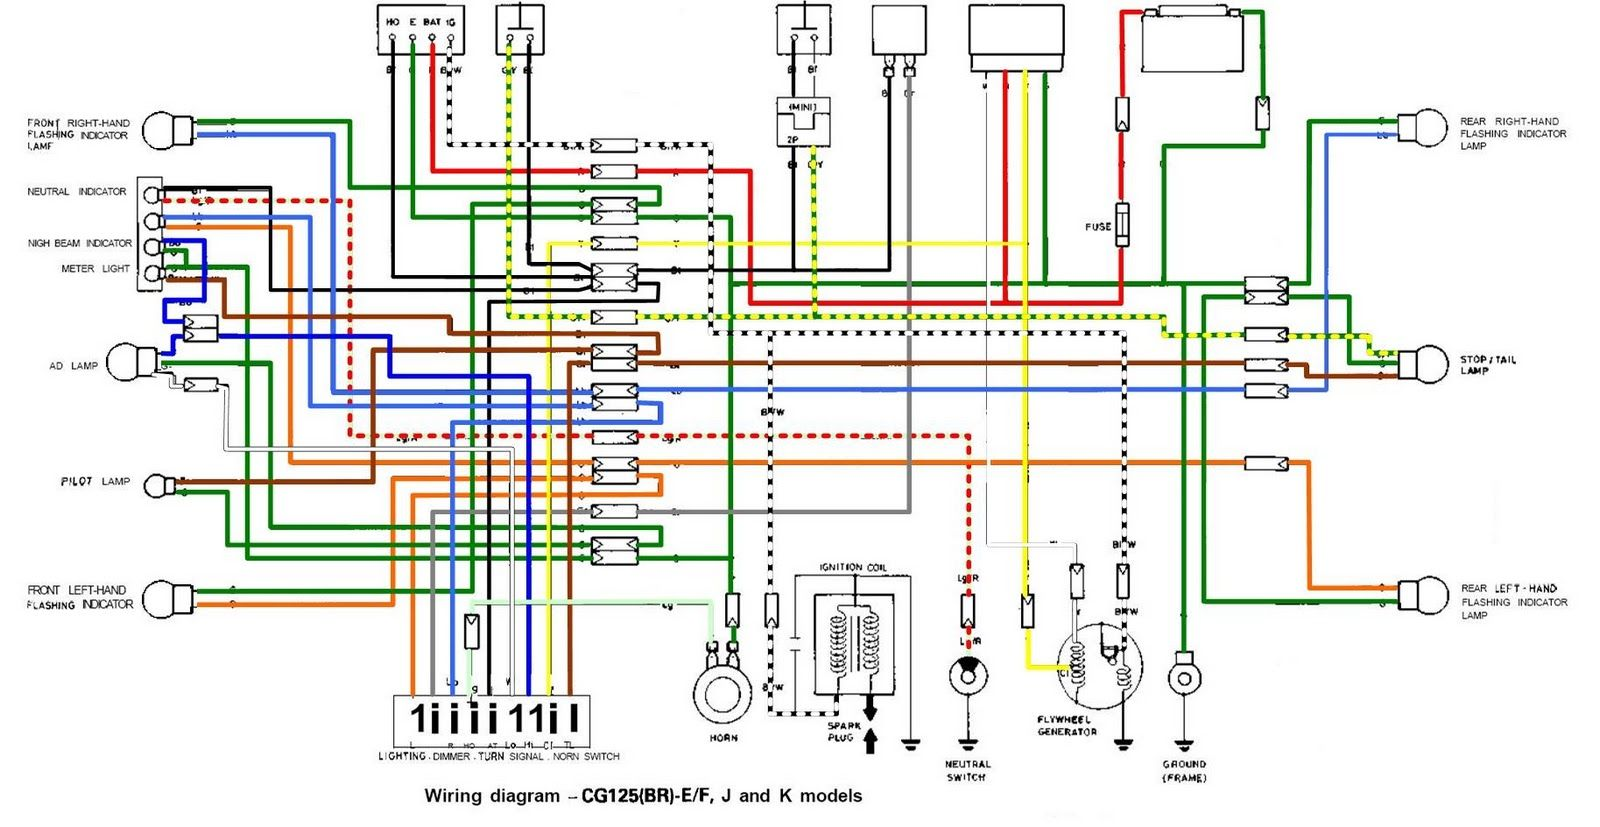 kawasaki mule wiring-diagram, kawasaki bayou 185 wiring-diagram, kawasaki 400 wiring diagram, kawasaki atv wiring diagram, kawasaki 100 wiring diagram, ezgo wiring diagram, kawasaki 750 wiring diagram, klr 650 wiring diagram, kawasaki 4 wheeler wiring diagram, triton trailer wiring diagram, kawasaki bayou 300 wiring diagram, kawasaki mojave 250, kawasaki 500 wiring diagram, kawasaki ignition system wiring diagram, kawasaki 250 parts diagram, kawasaki engine wiring diagrams, suzuki marauder wiring diagram, kawasaki bayou 220 wiring diagram, kawasaki motorcycle wiring diagrams, kawasaki kz1000 wiring-diagram, on kawasaki f11 250 wiring diagram